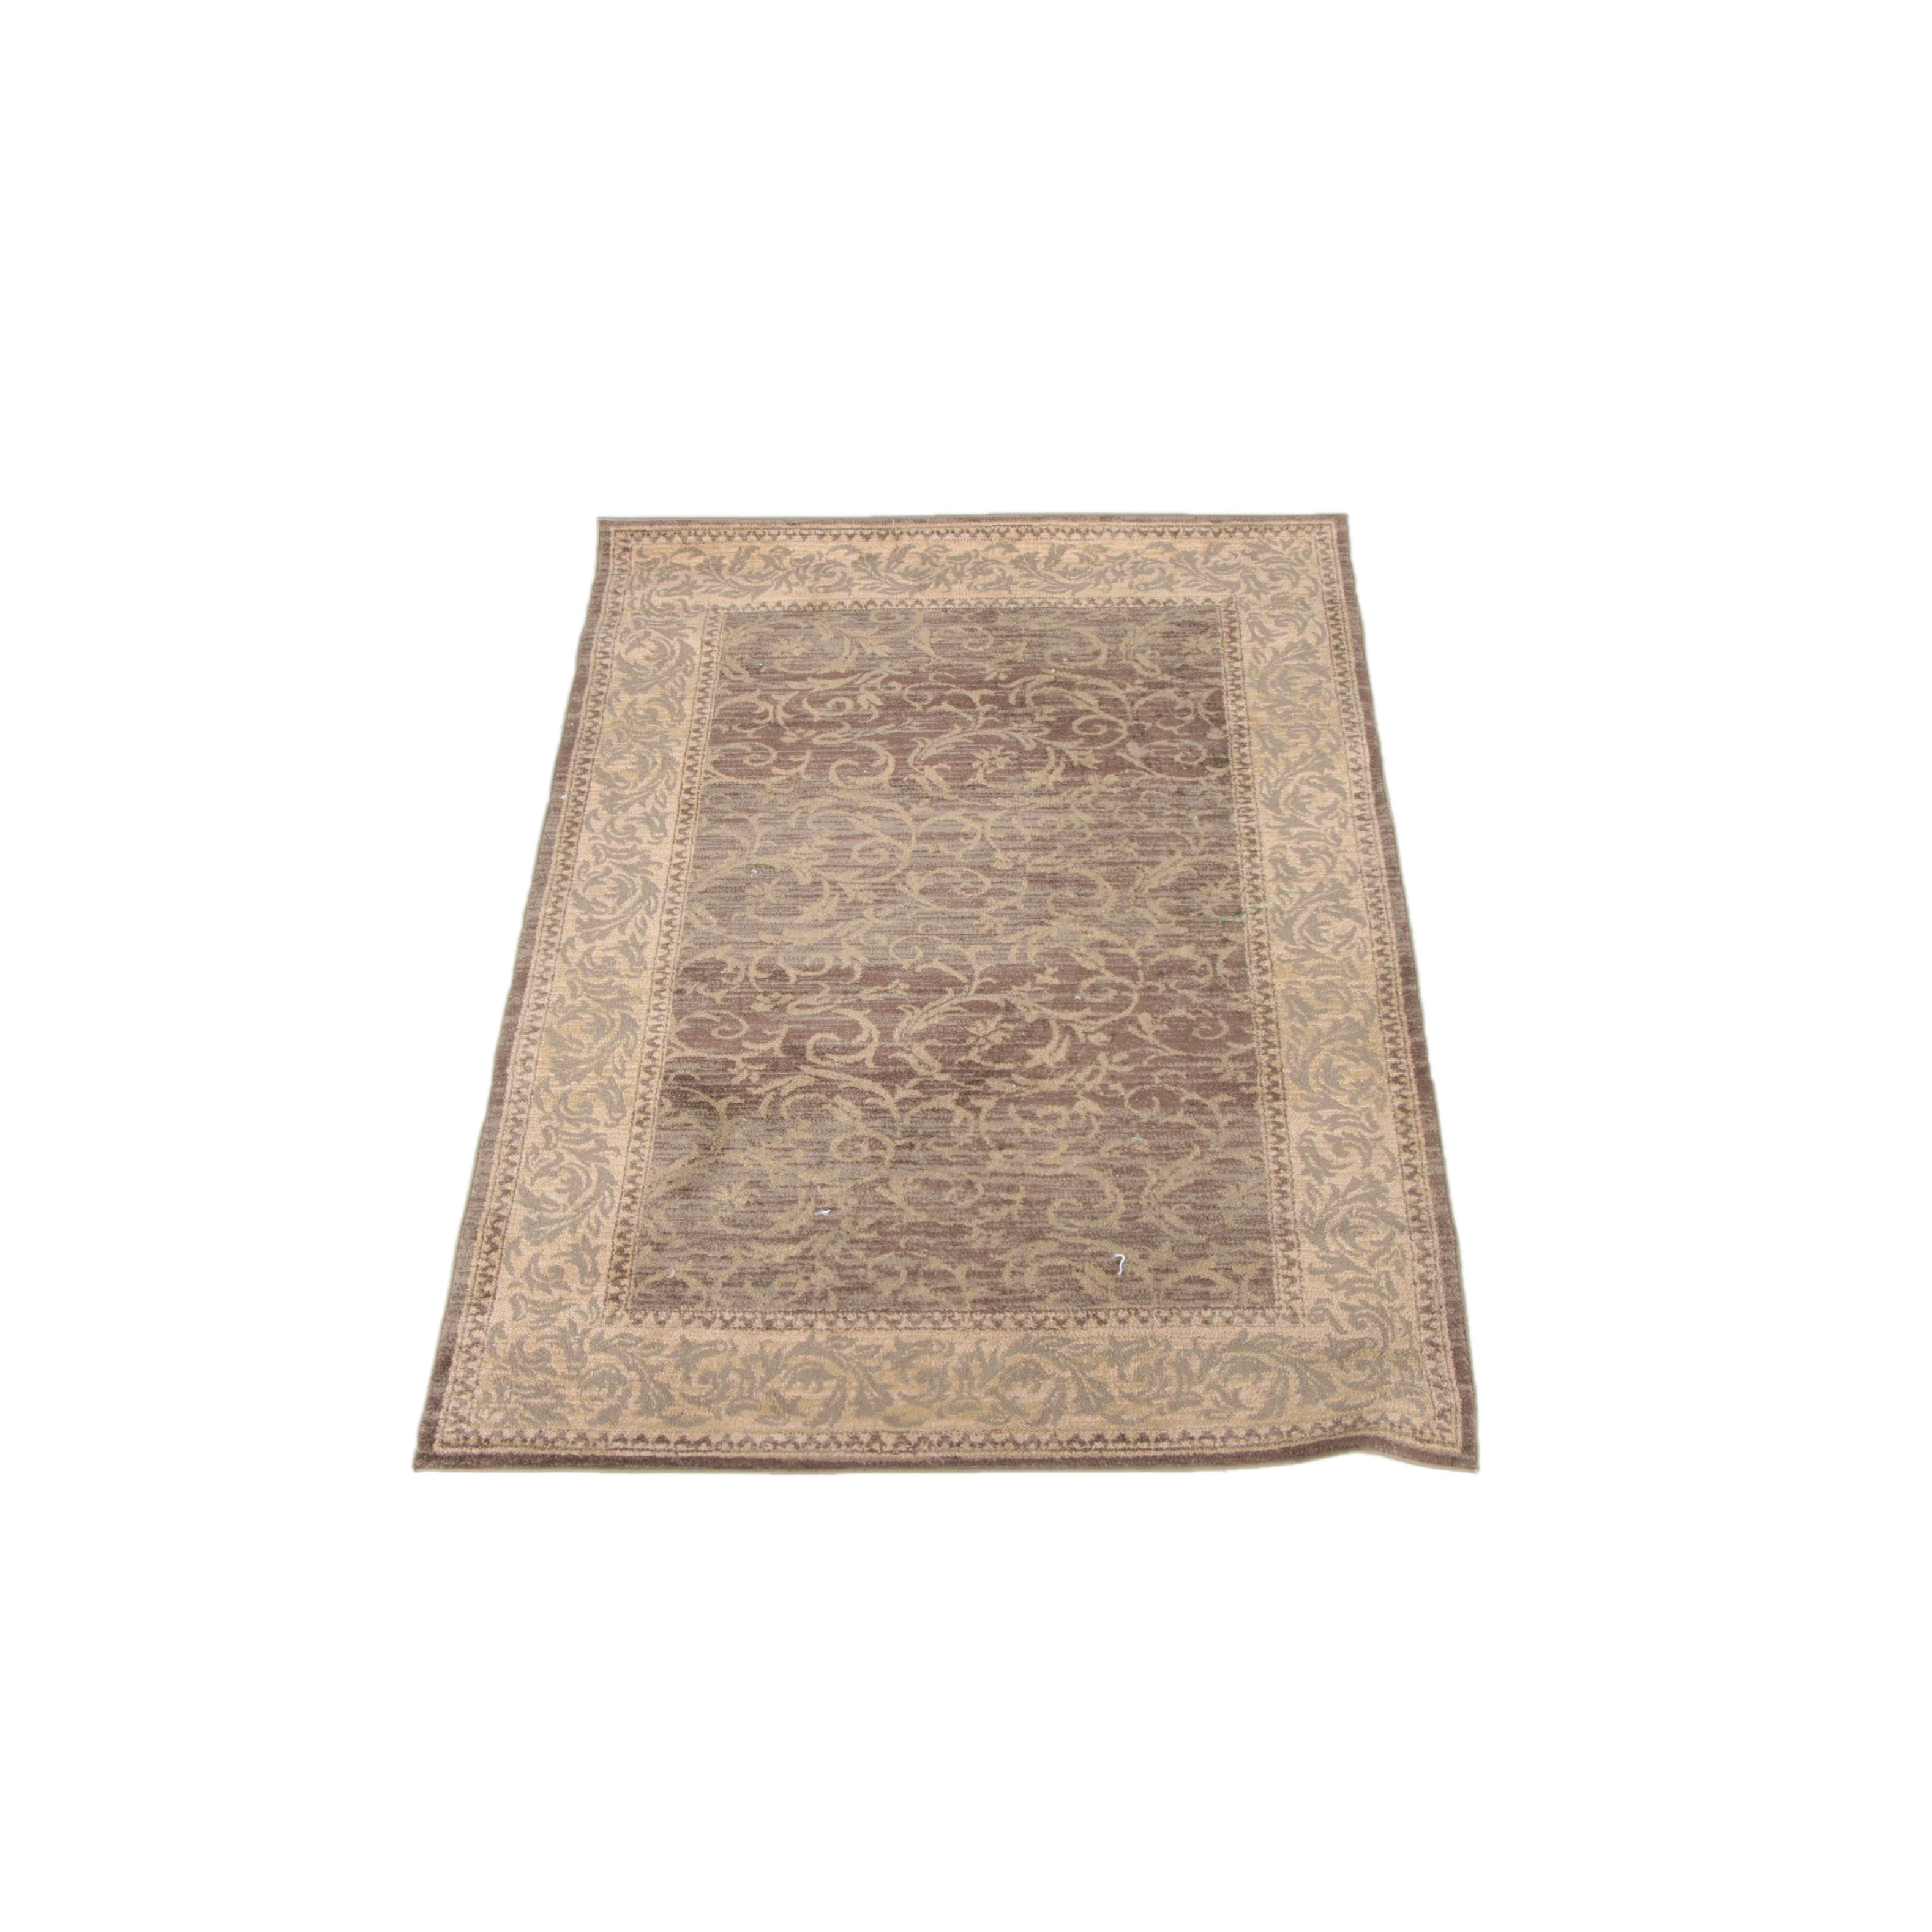 "power-loomed ""superior antiqua"" area rugat home : ebth at Home Area Rugs"